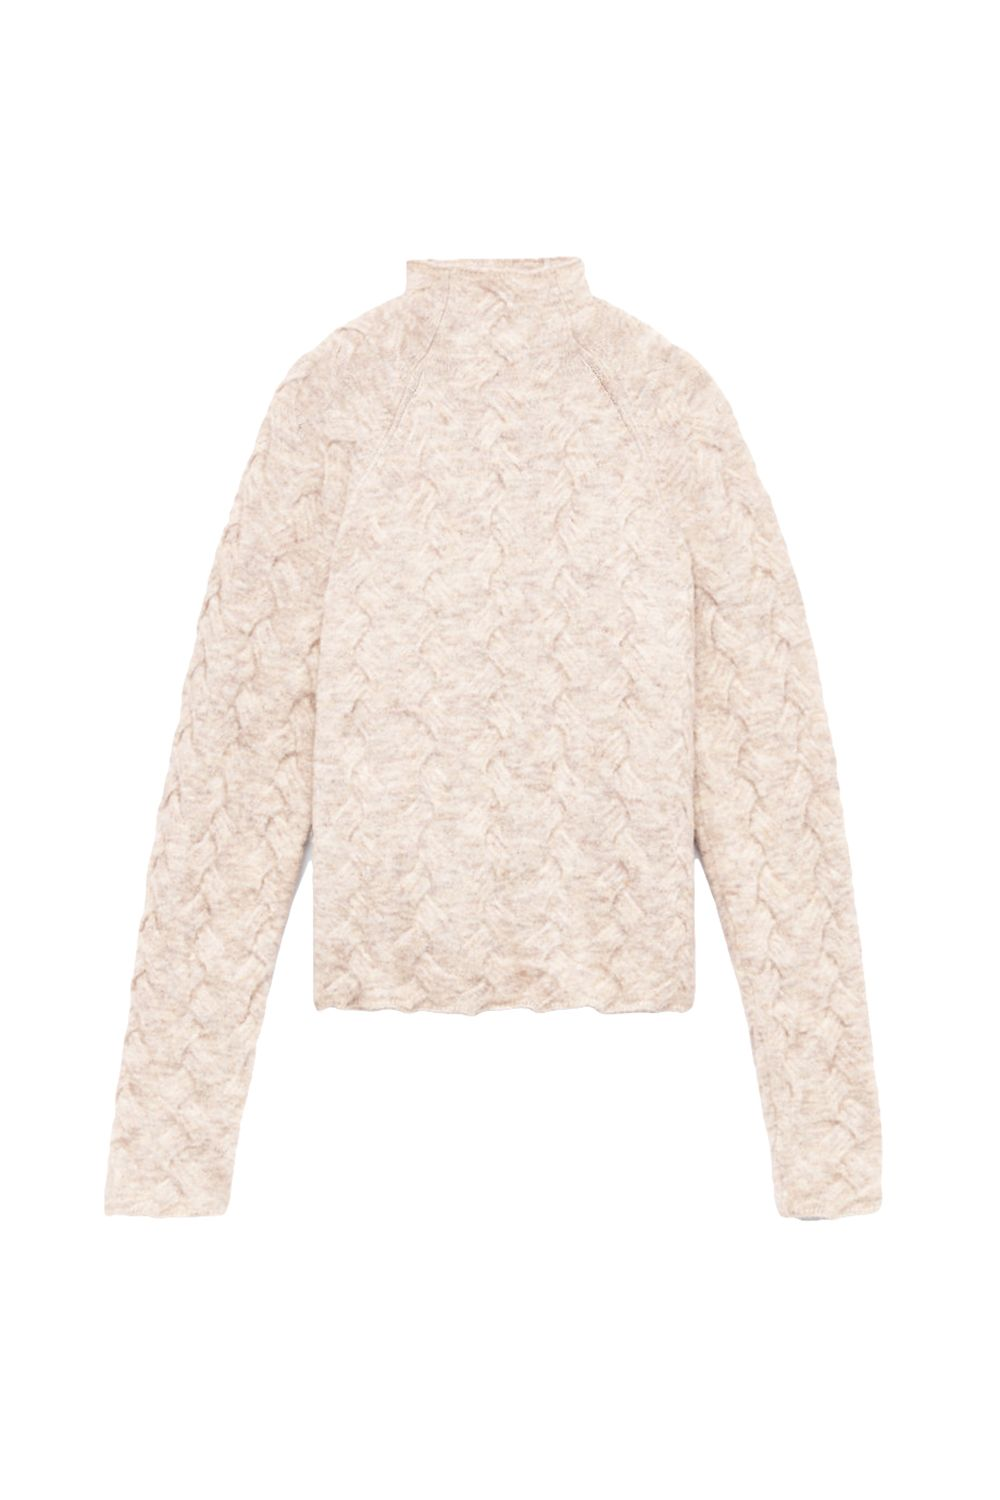 "<p>Here's a very nice woven sweater to make up for it. The texture is very pleasing and aligns with <a href=""http://www.marieclaire.com/fashion/news/g4815/fall-fashion-2017/"" target=""_blank"" data-tracking-id=""recirc-text-link"">one of fall's biggest trends</a>.</p><p><em data-redactor-tag=""em"" data-verified=""redactor"">Aritzia, $145</em></p><p><strong data-redactor-tag=""strong"" data-verified=""redactor"">BUY IT: <a href=""http://us.aritzia.com/product/mical-sweater/61056.html?dwvar_61056_color=10359"" target=""_blank"" data-tracking-id=""recirc-text-link"">aritzia.com</a>.</strong></p>"